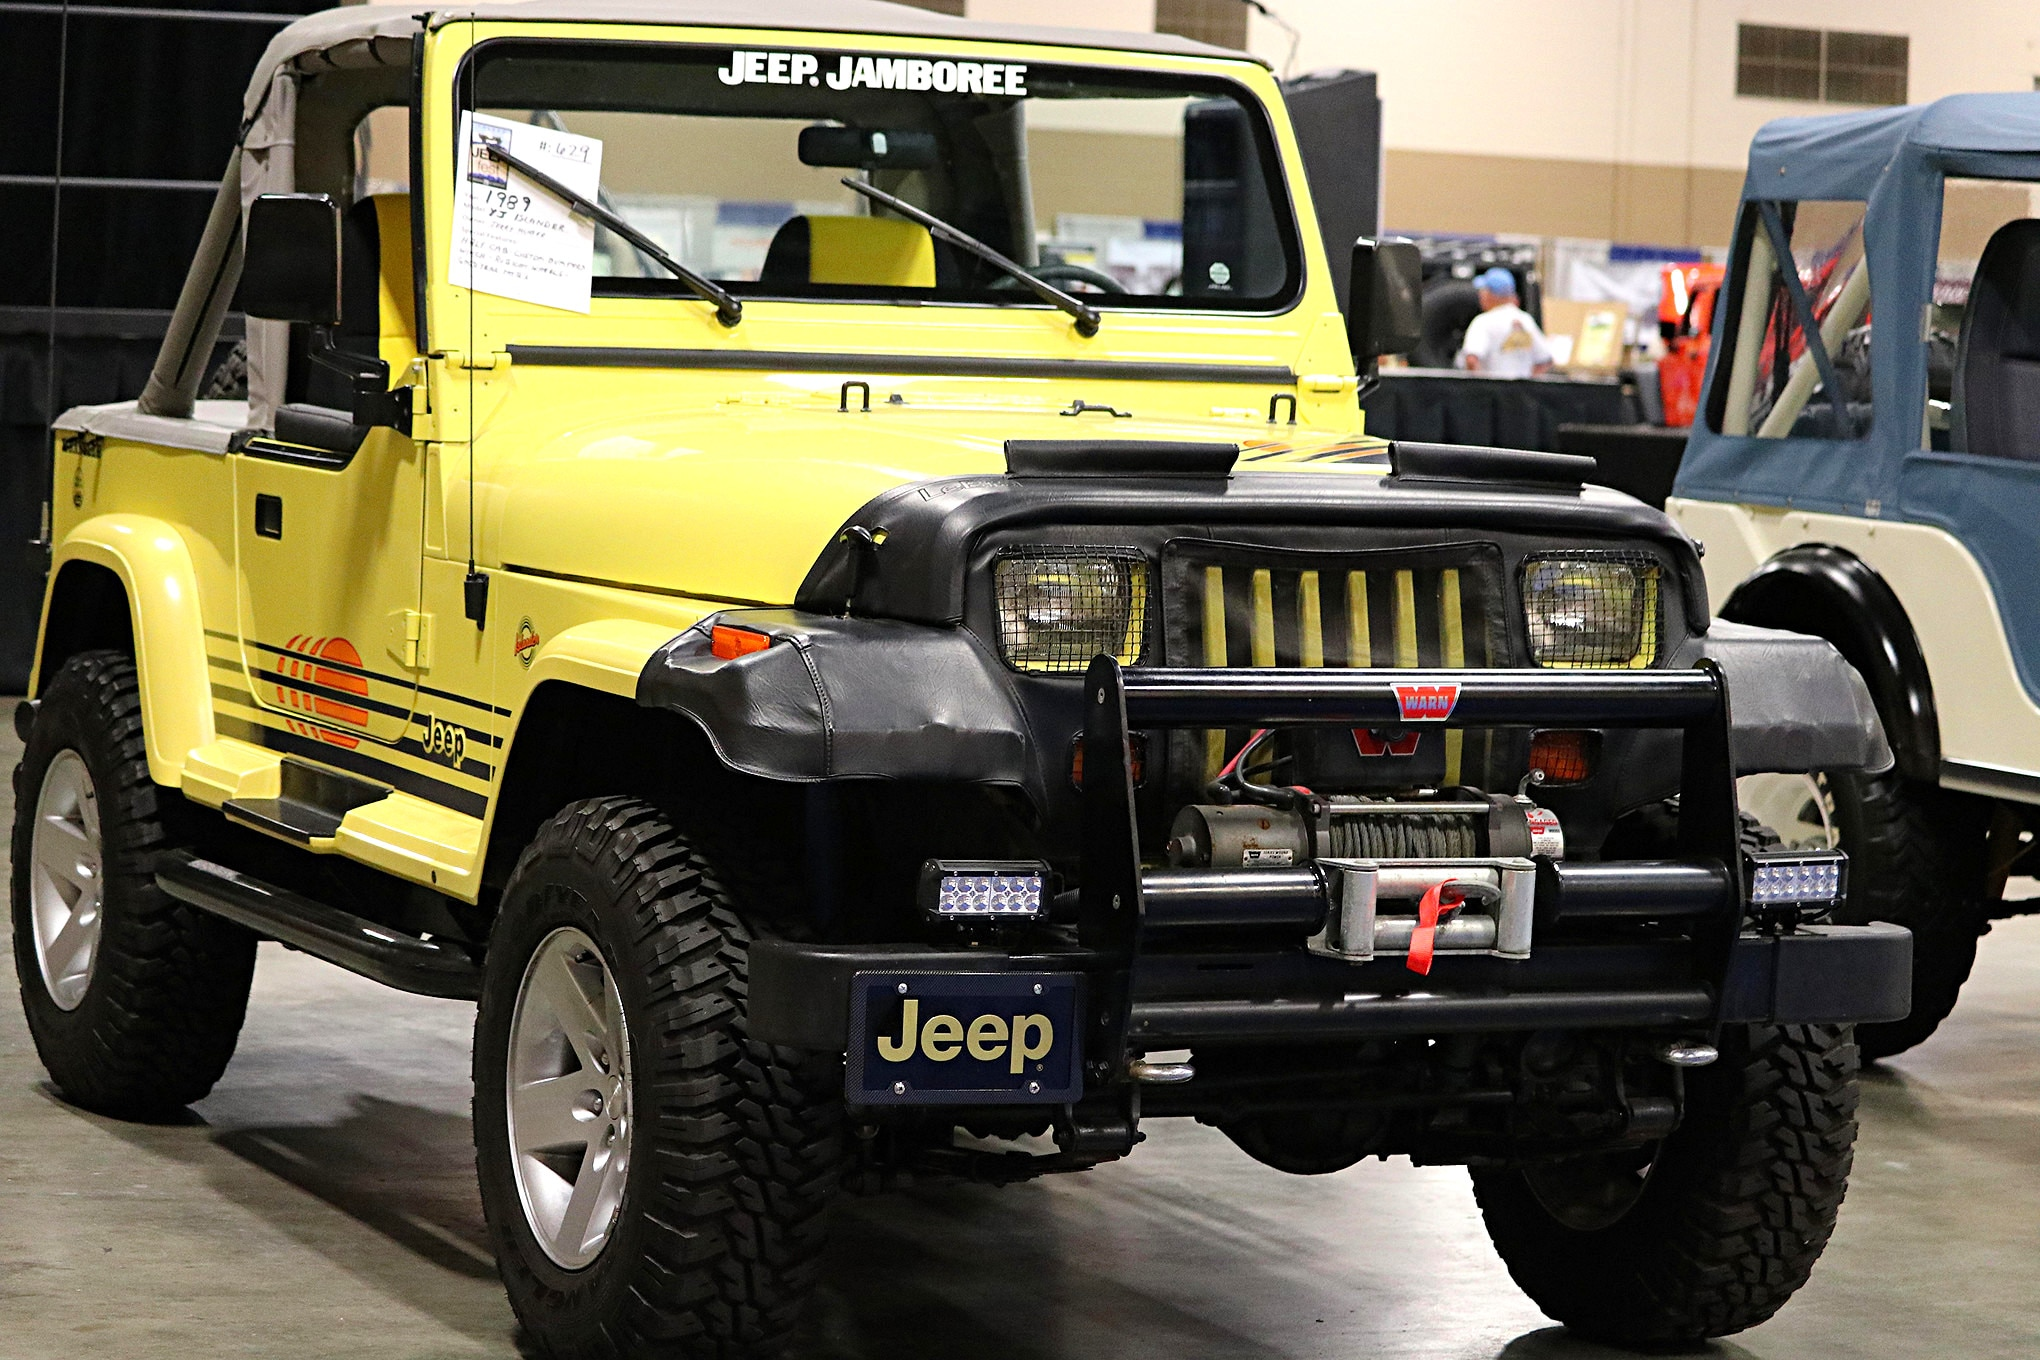 hight resolution of former toledo plant manager jerry huber brought this 89 jeep yj islander to the show seen here with a half cab huber has added custom bumpers